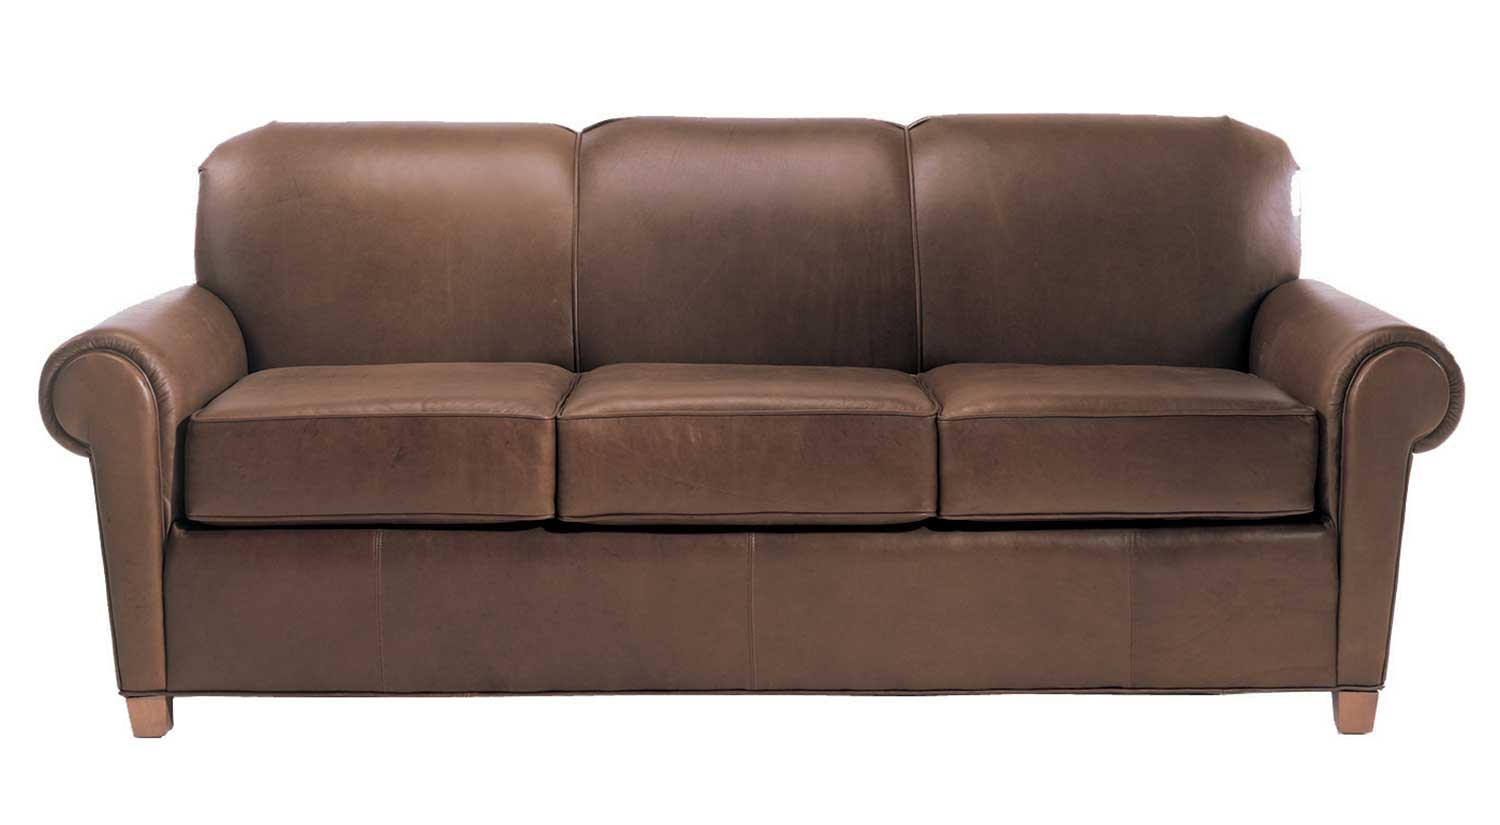 Sofa Portland City Liquidators Furniture Warehouse Home Sofas Thesofa